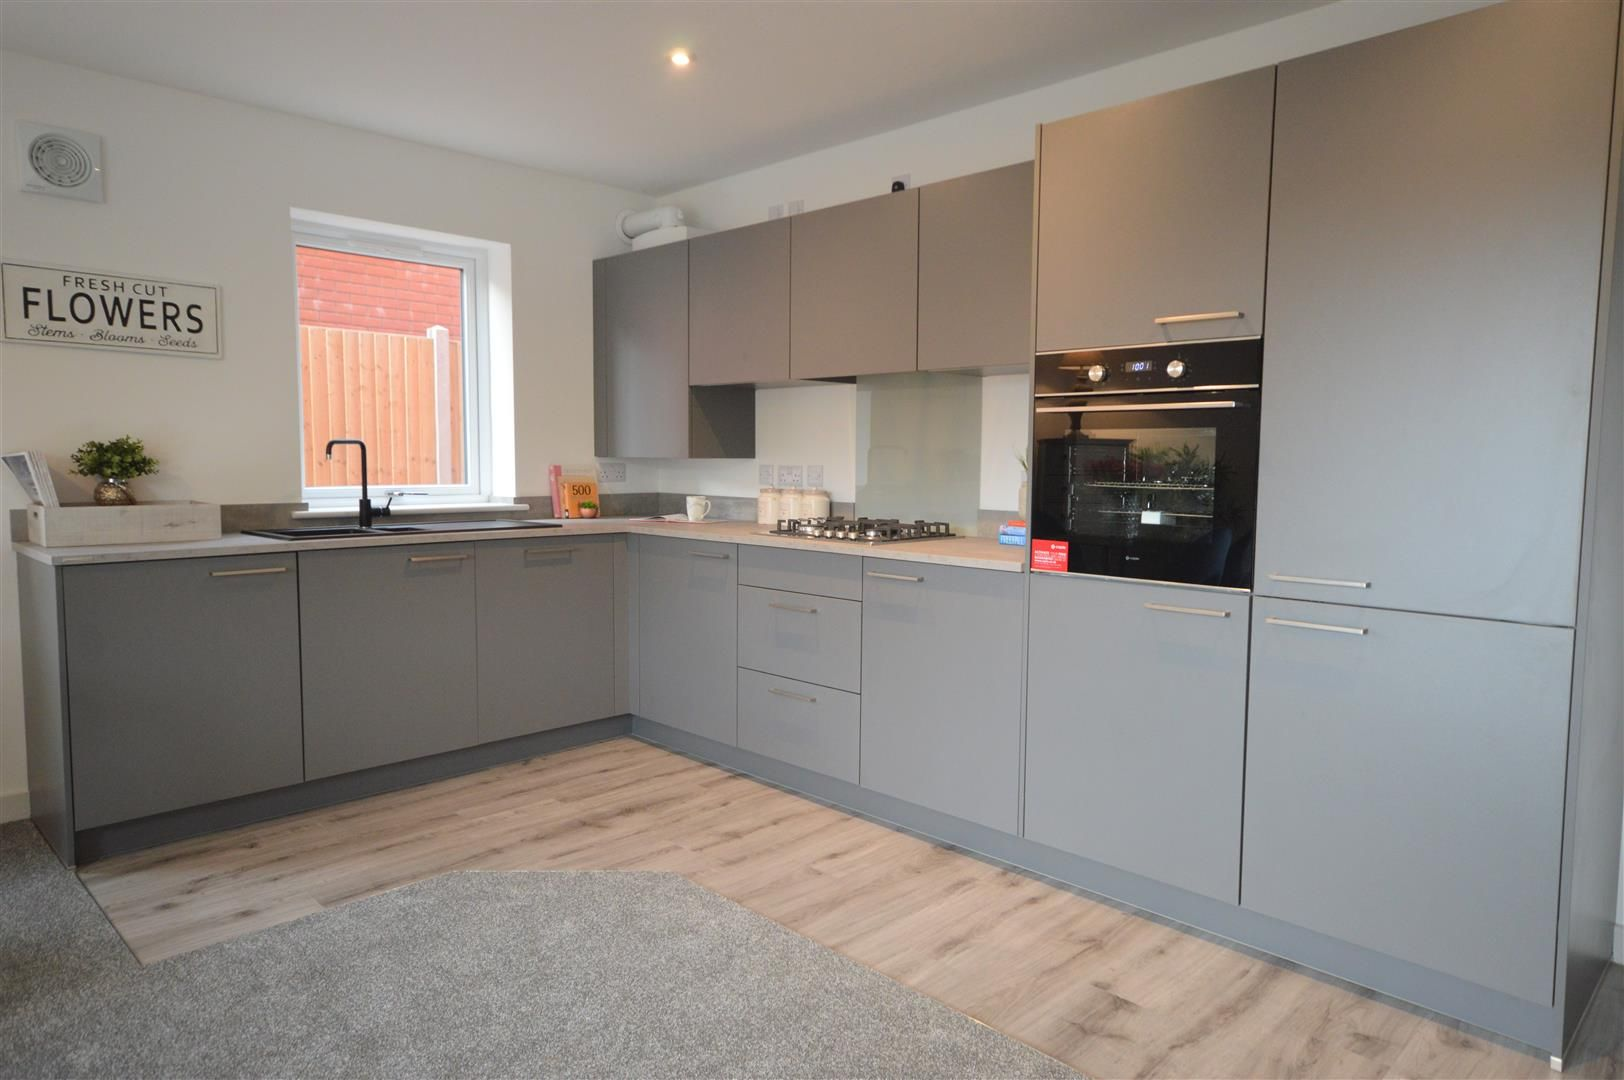 2 bed house for sale in Leominster 7